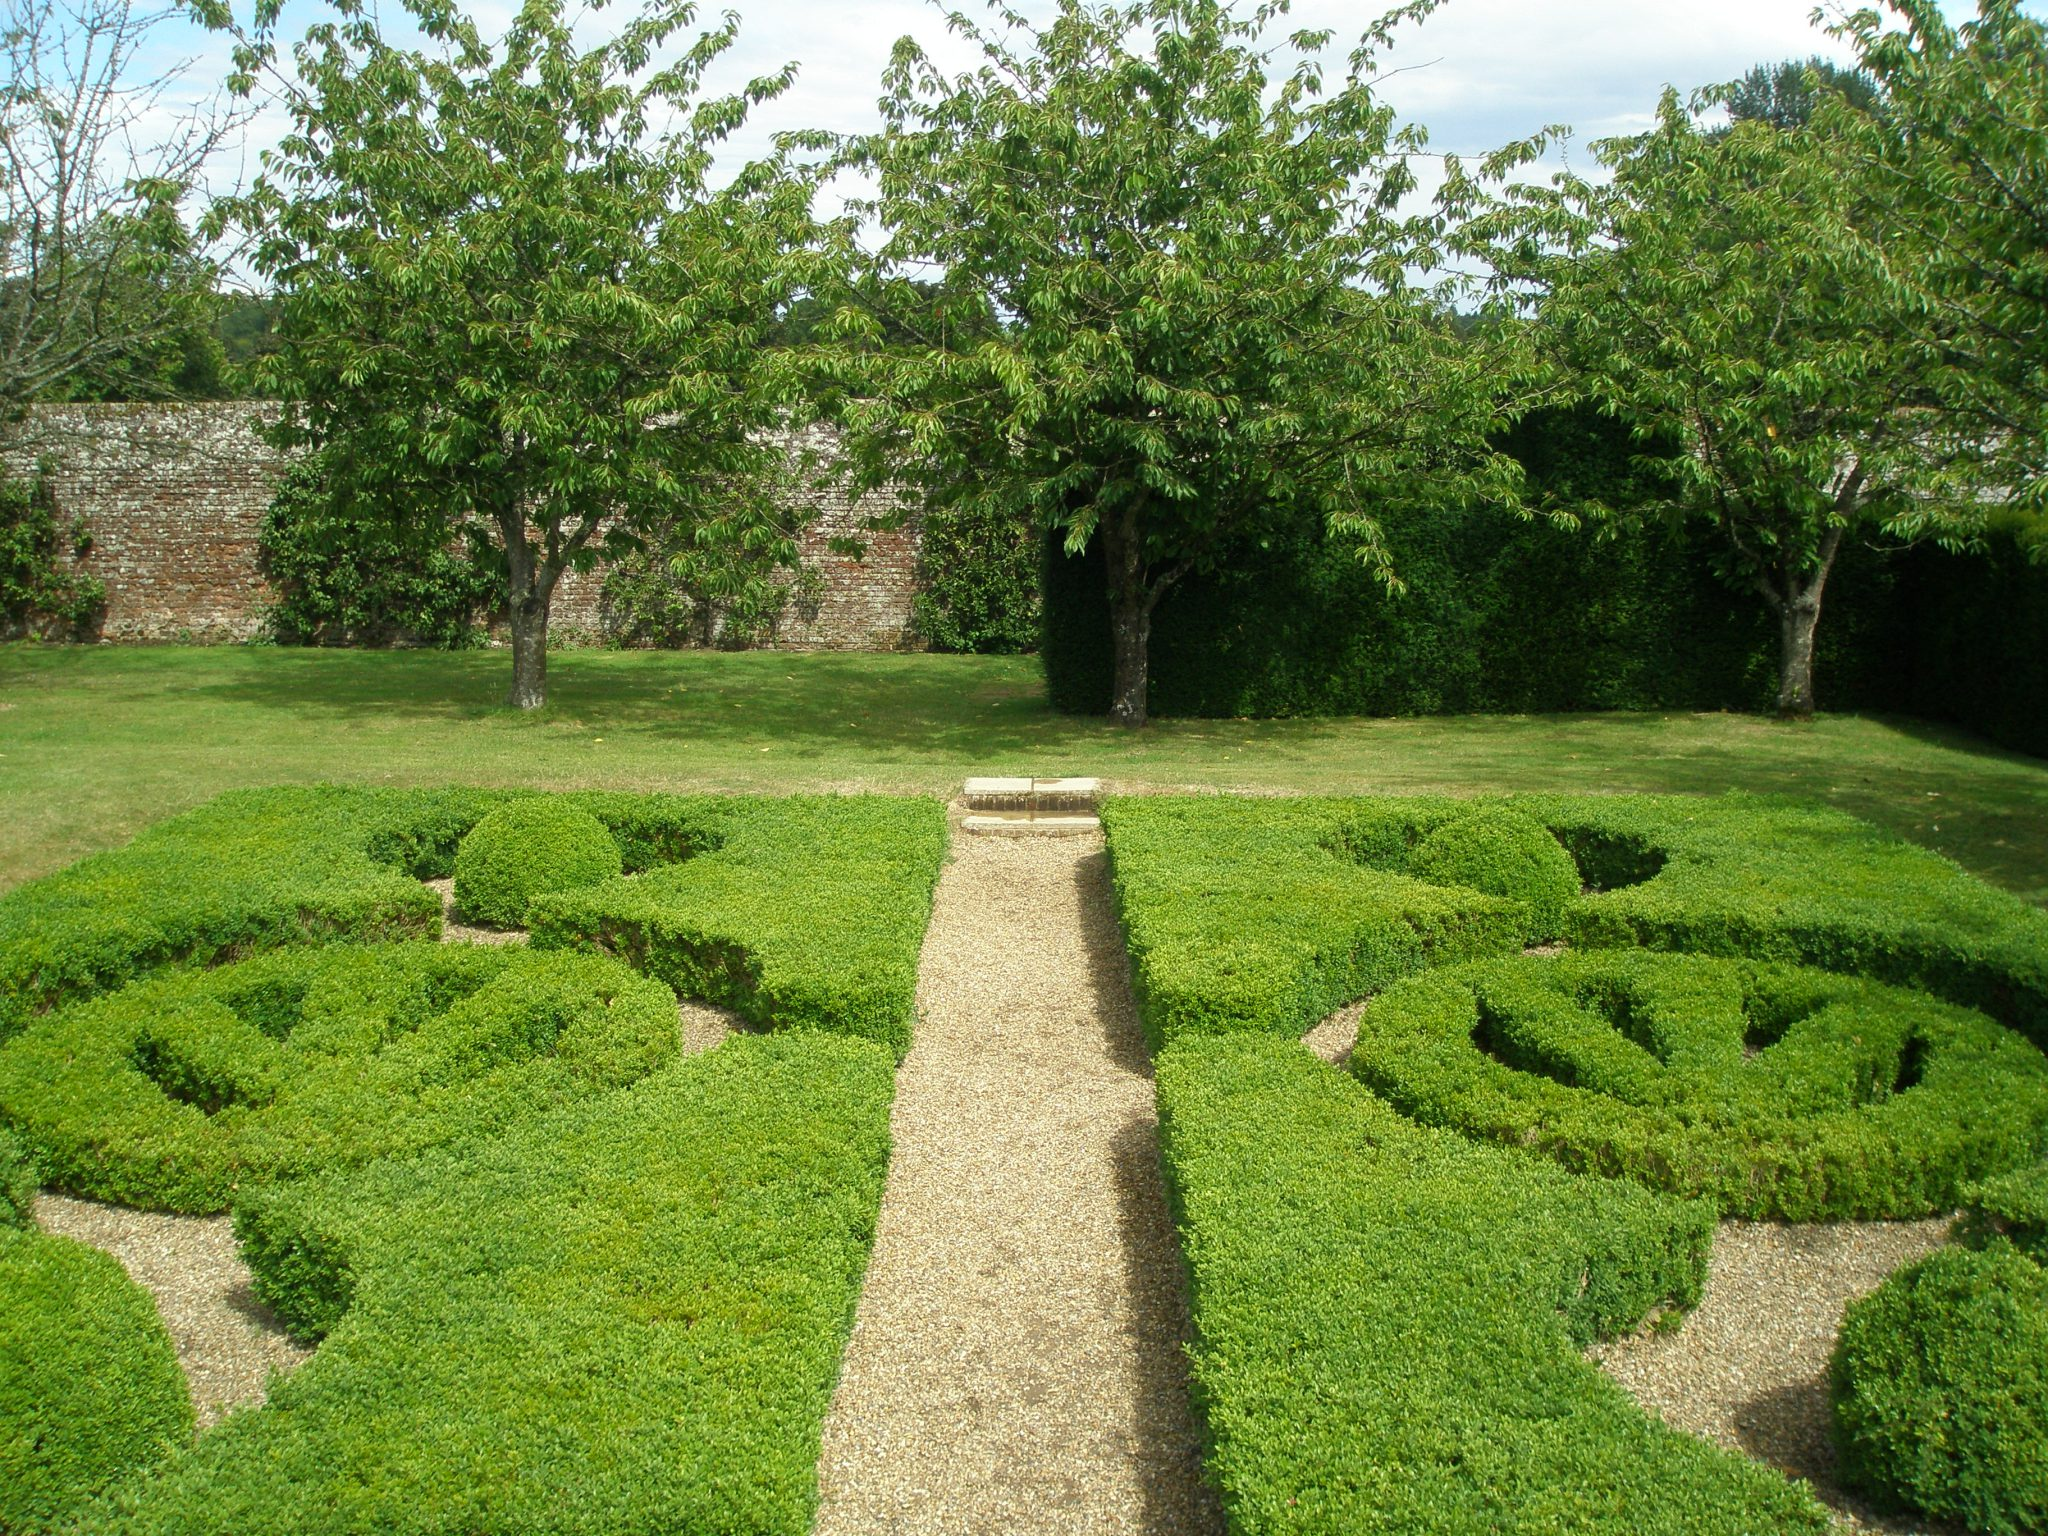 The Sidney Coat of Arms also finds its way into boxwood hedges, throughout the Gardens.